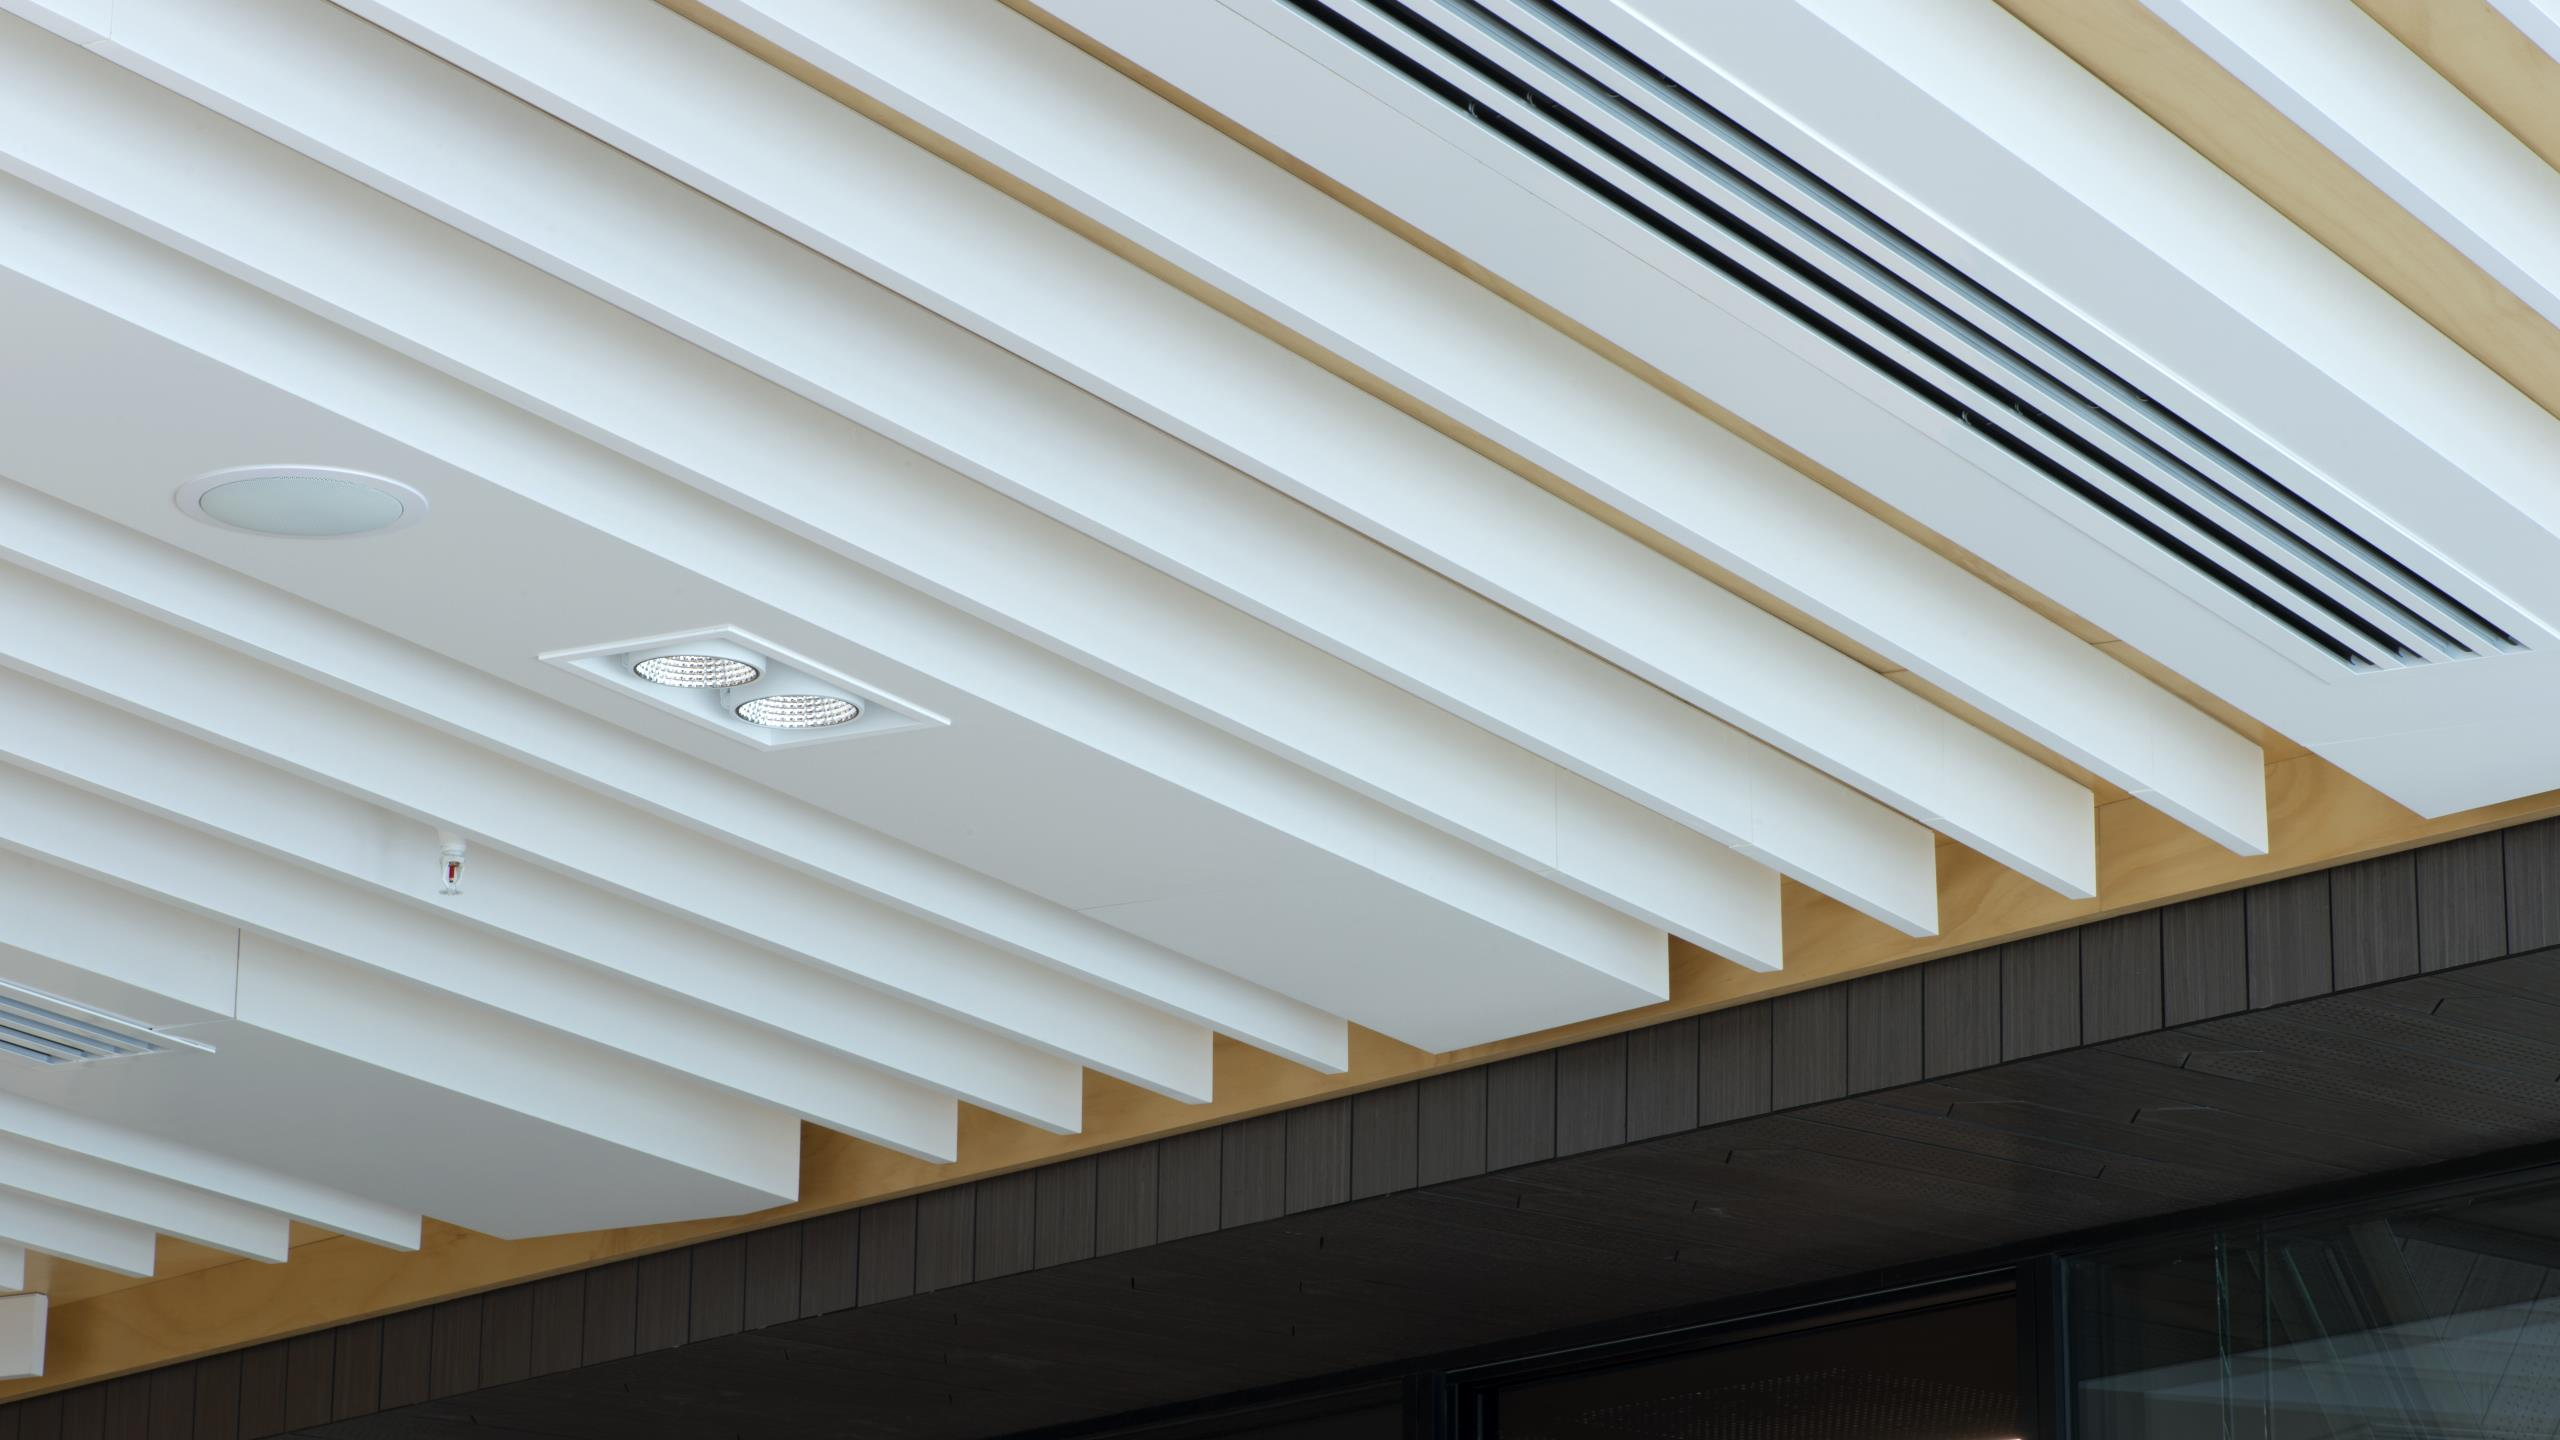 Meredith Connell - Ridgeline Ceiling Fin System